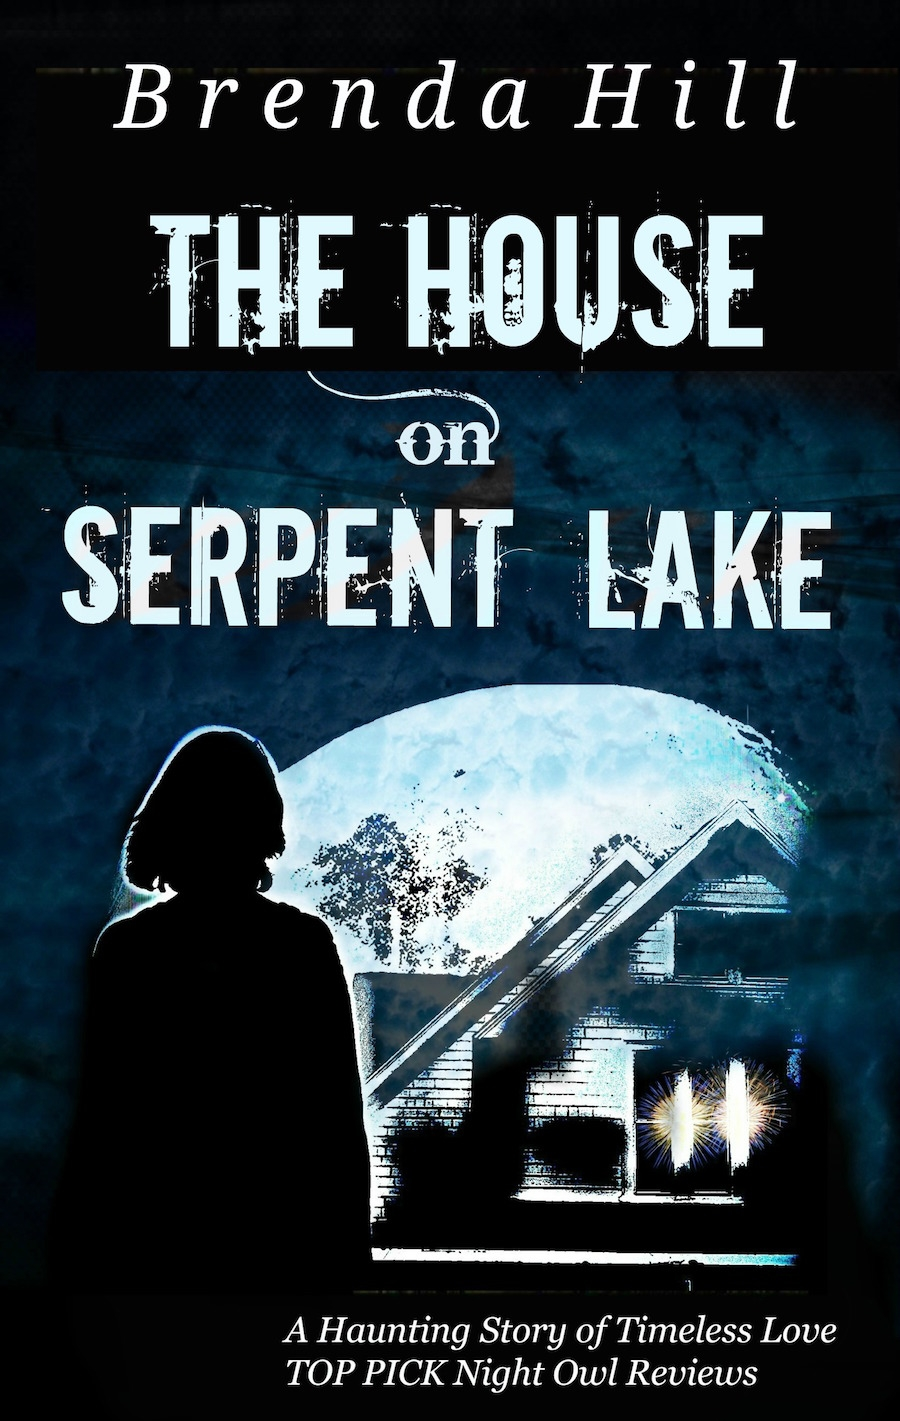 brenda-hill-the-house-on-serpent-lake